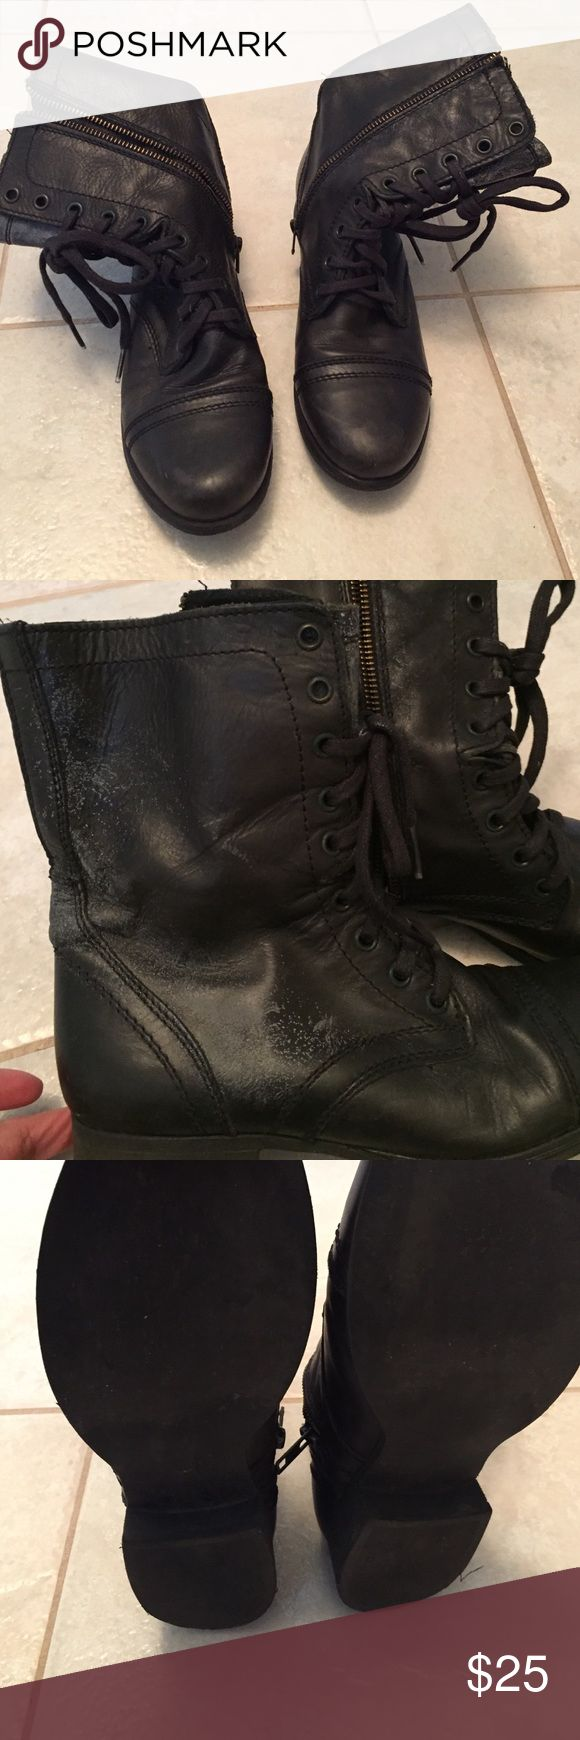 Steve Madden troopa black boot size 7.5 Steve Madden troopa back boot size 7.5 looks worn Steve Madden Shoes Ankle Boots & Booties